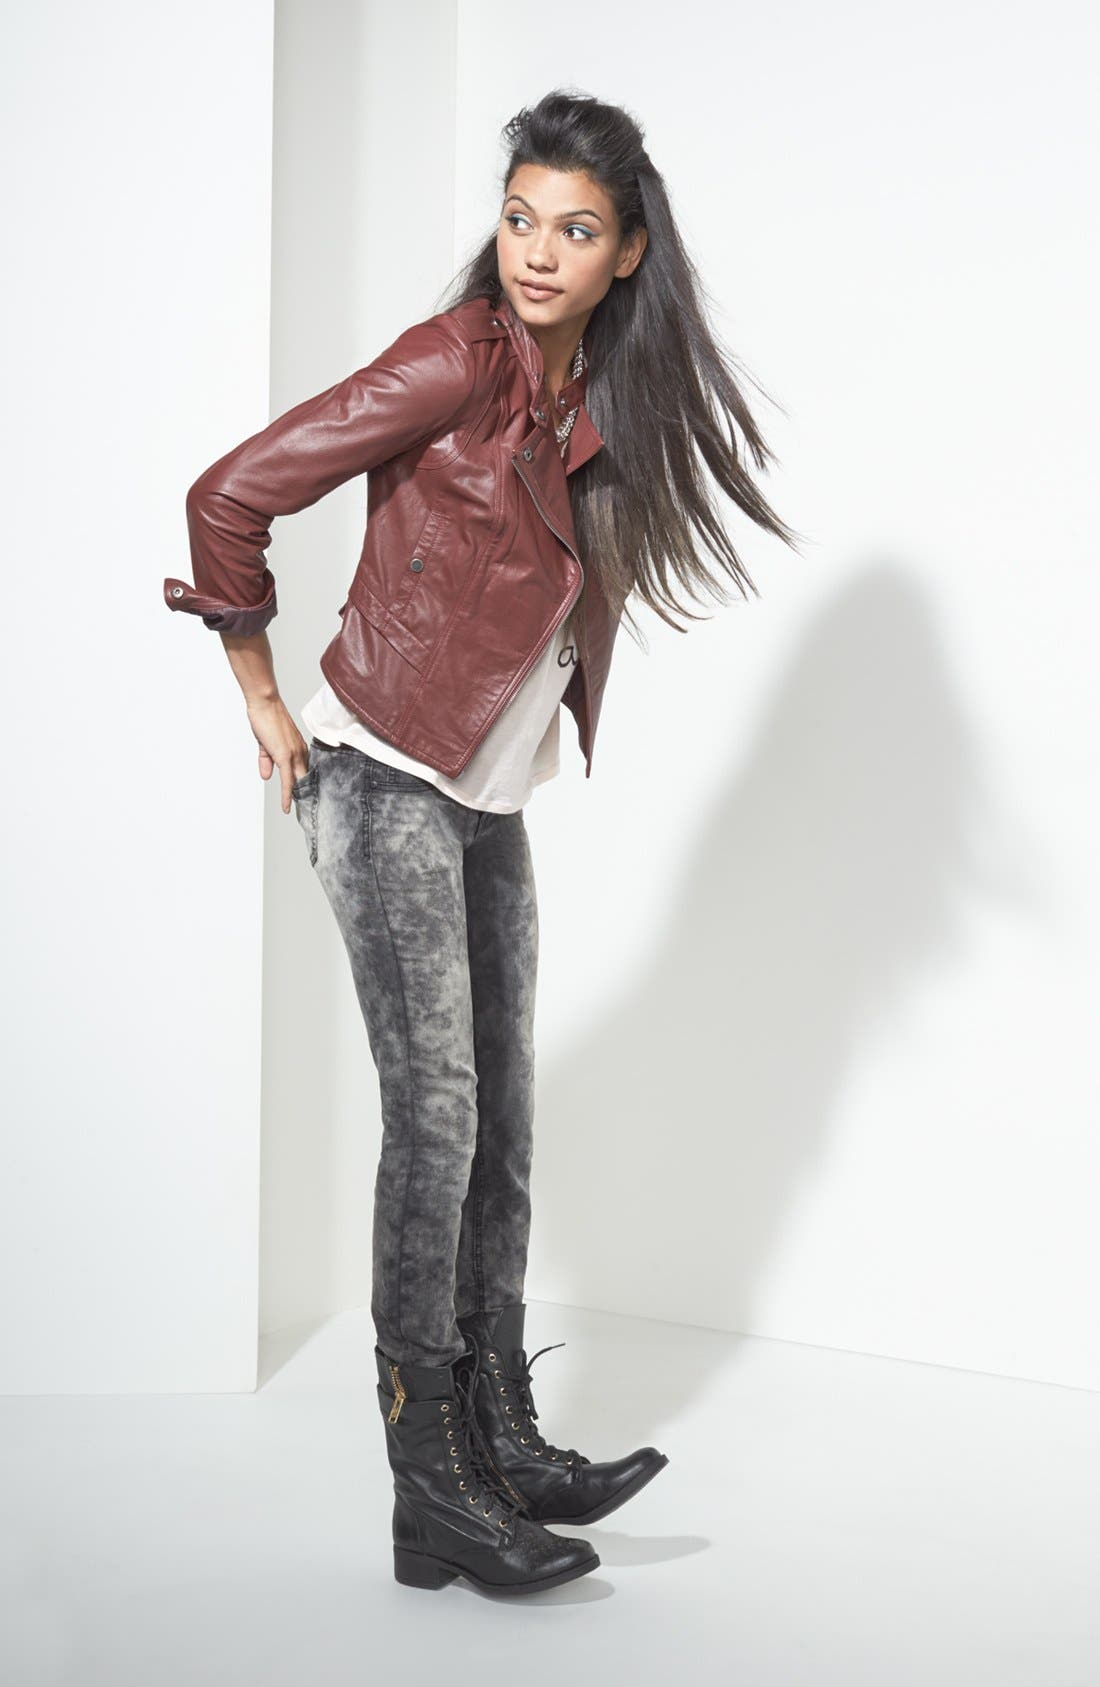 Main Image - Collection B Jacket, Ten Sixty Sherman Tee & Fire Jeans